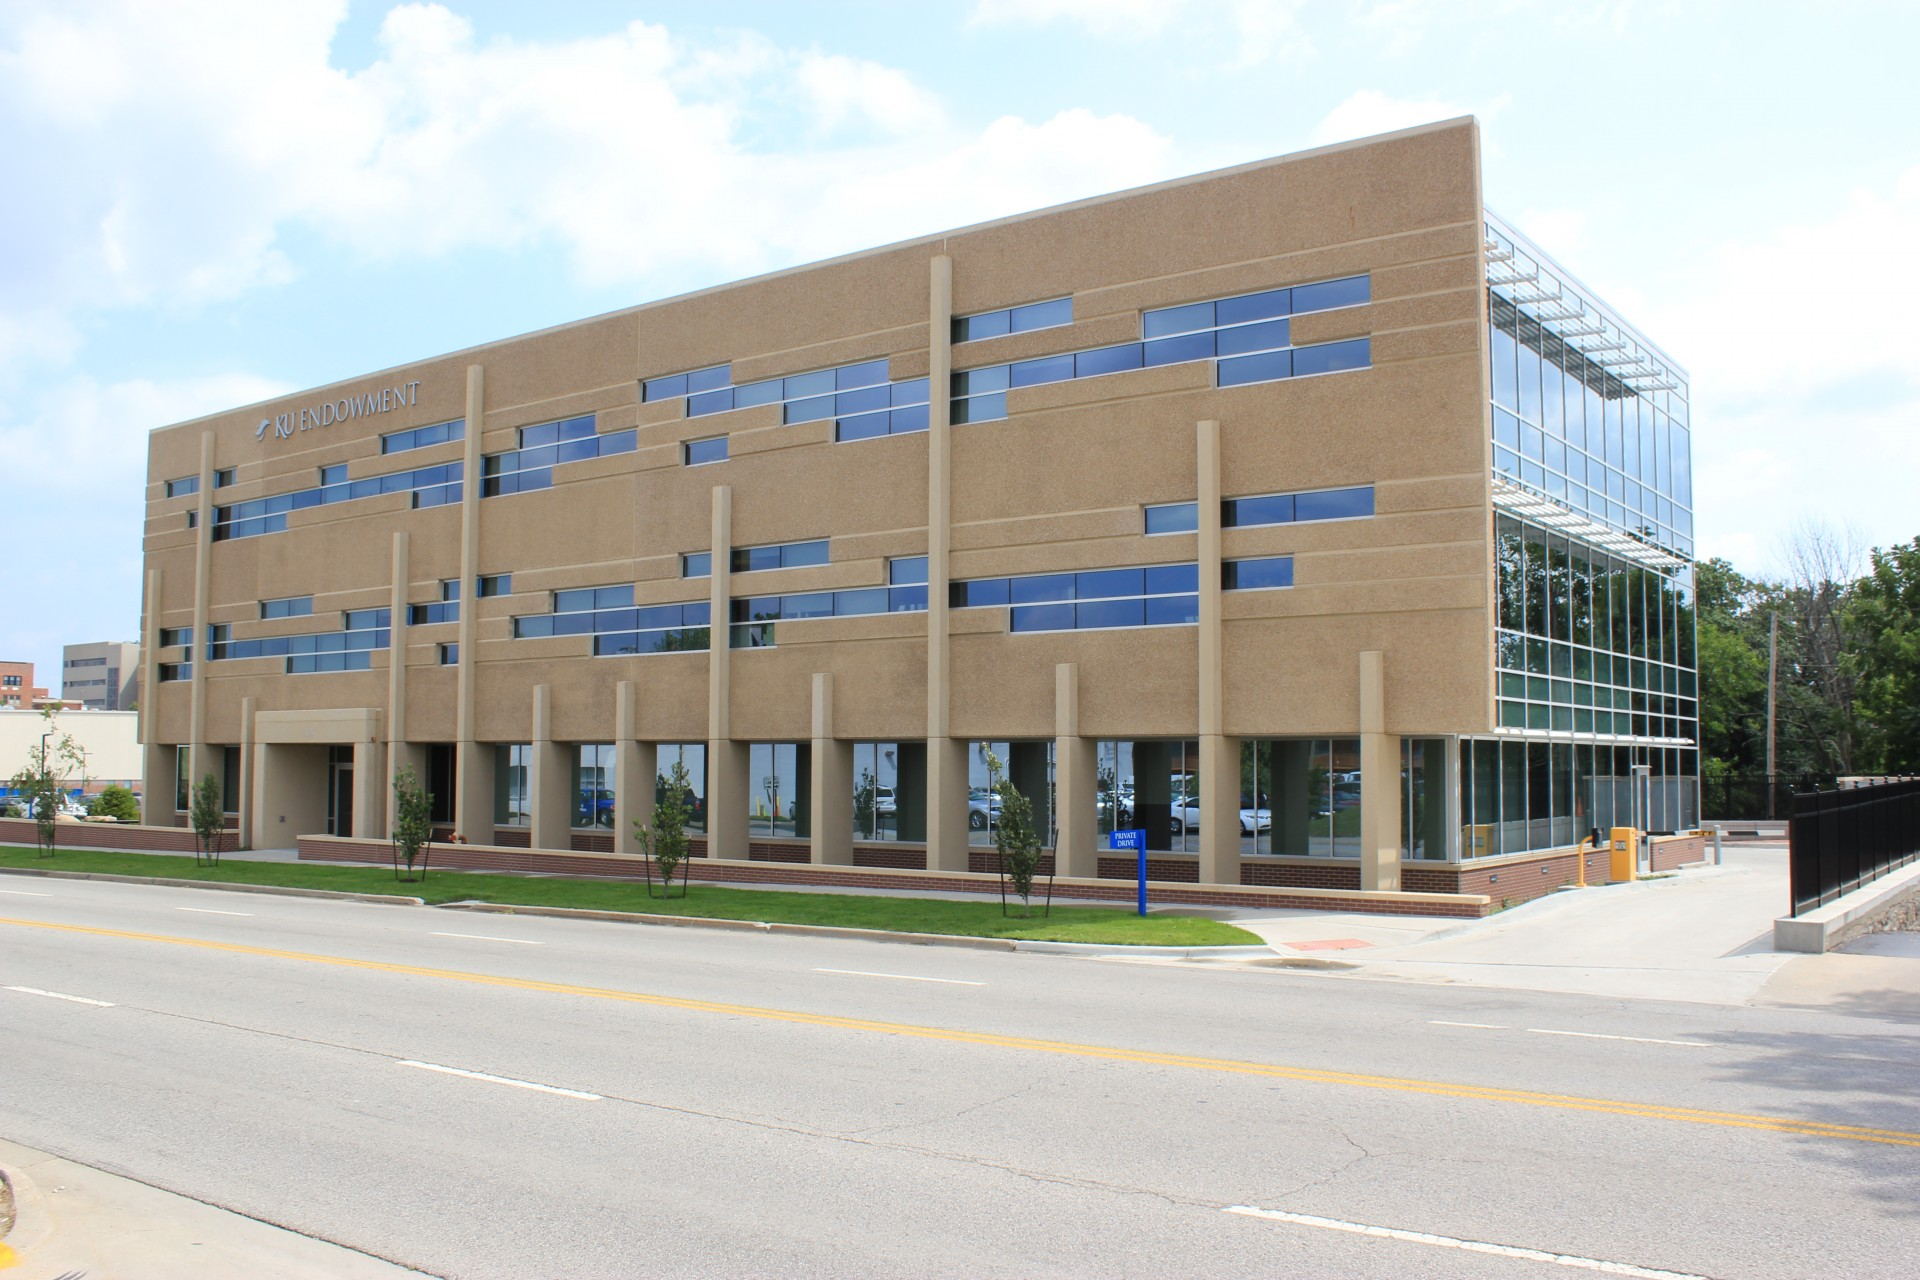 office building architecture. Office Building Architecture Design. The Ku Endowment Was Completed In 2010 . Architect Used